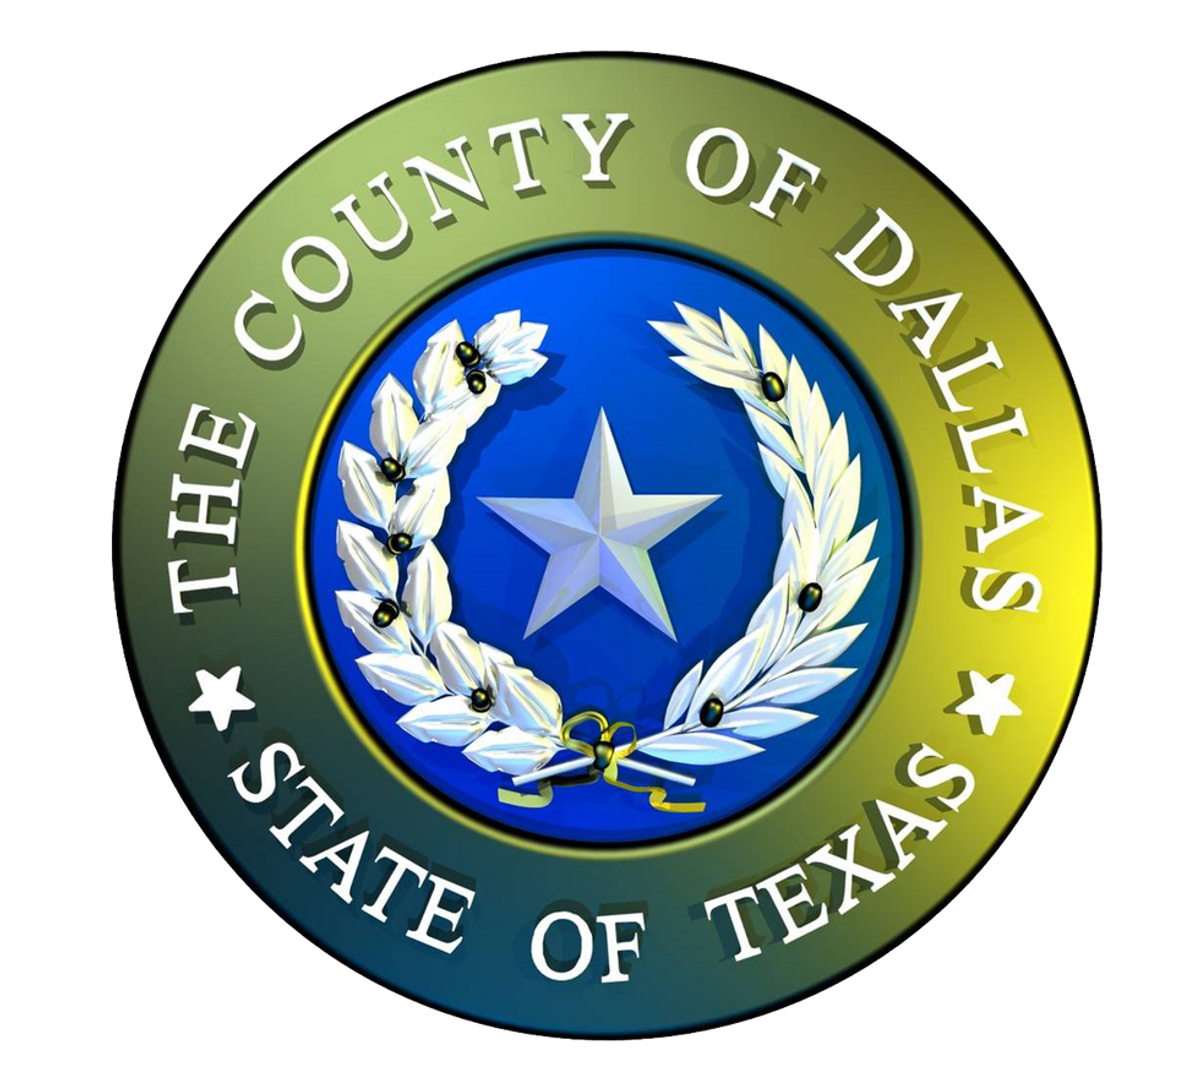 Dallas County Medical Examiner Illegally Held Appointments